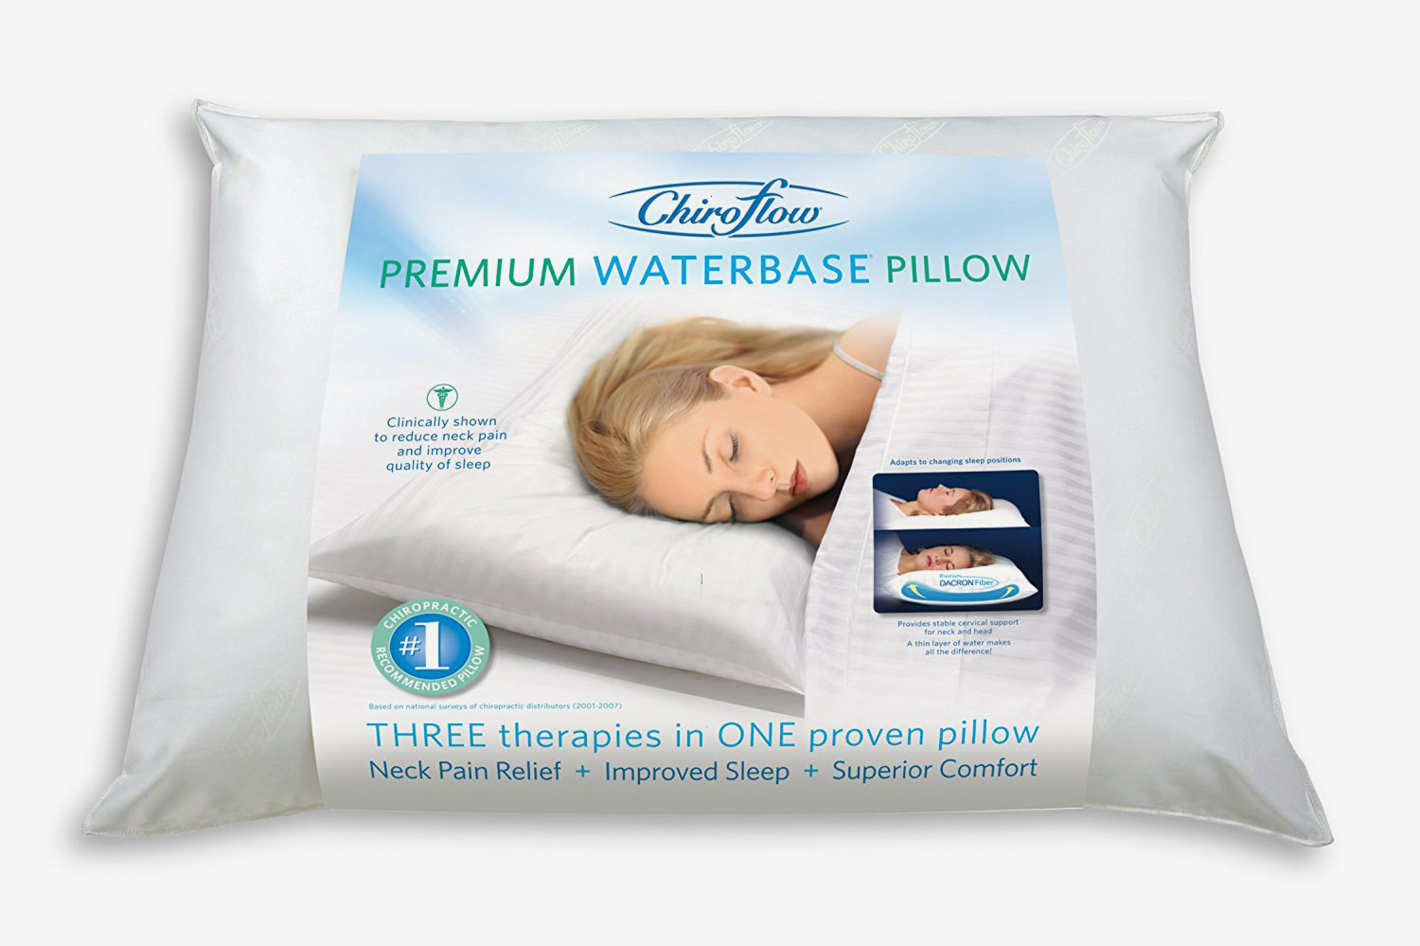 Chiroflow PILLOW by Mediflow Chiroflow